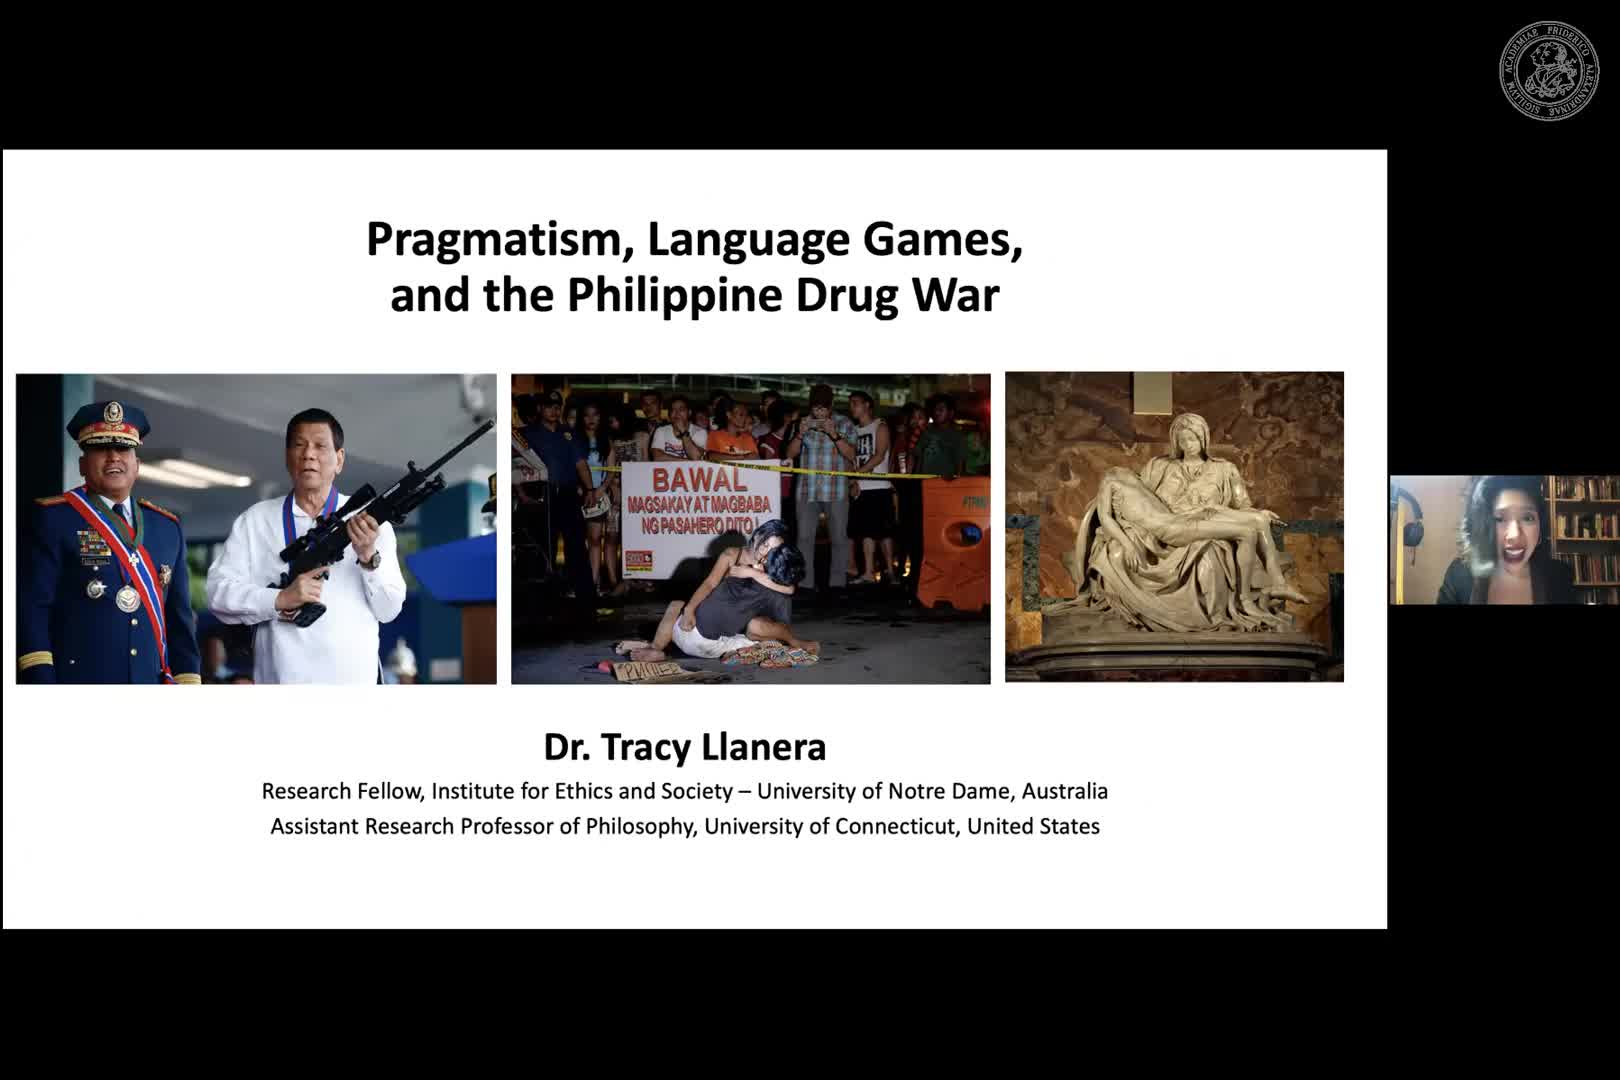 """Tracy Llanera (University of Connecticut): """"Pragmatism, Language Games, and the Philippine Drug War"""" preview image"""